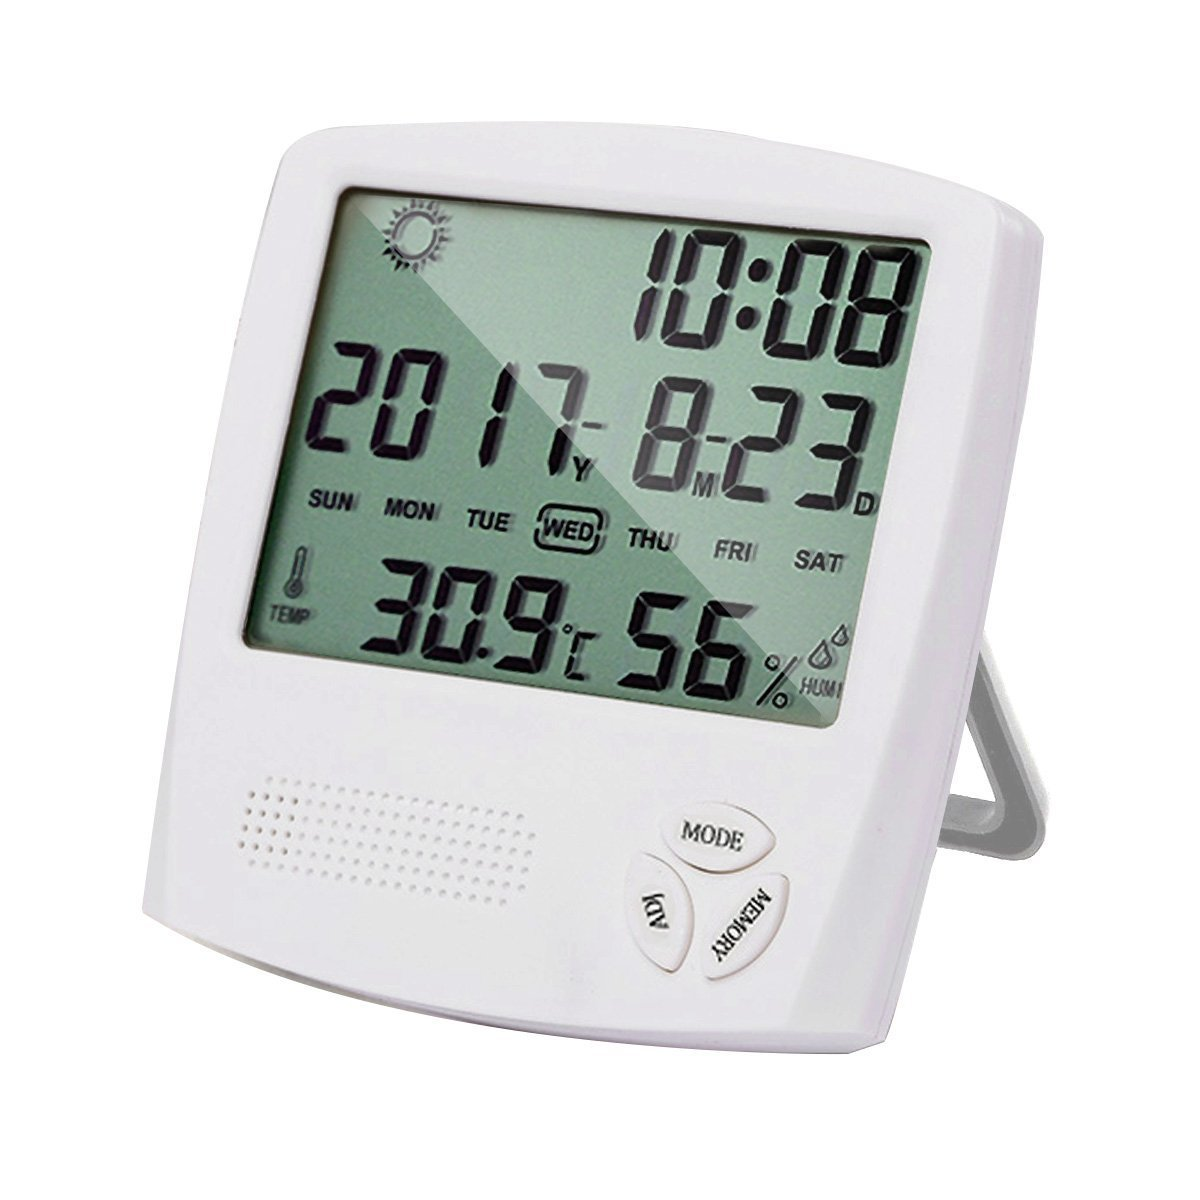 Humidity Meter Indoor Digital Thermometer Monitor Hygrometer Gauge Temperature/Time/Humidity/Weather/Alarm Clock (White) HUABEI